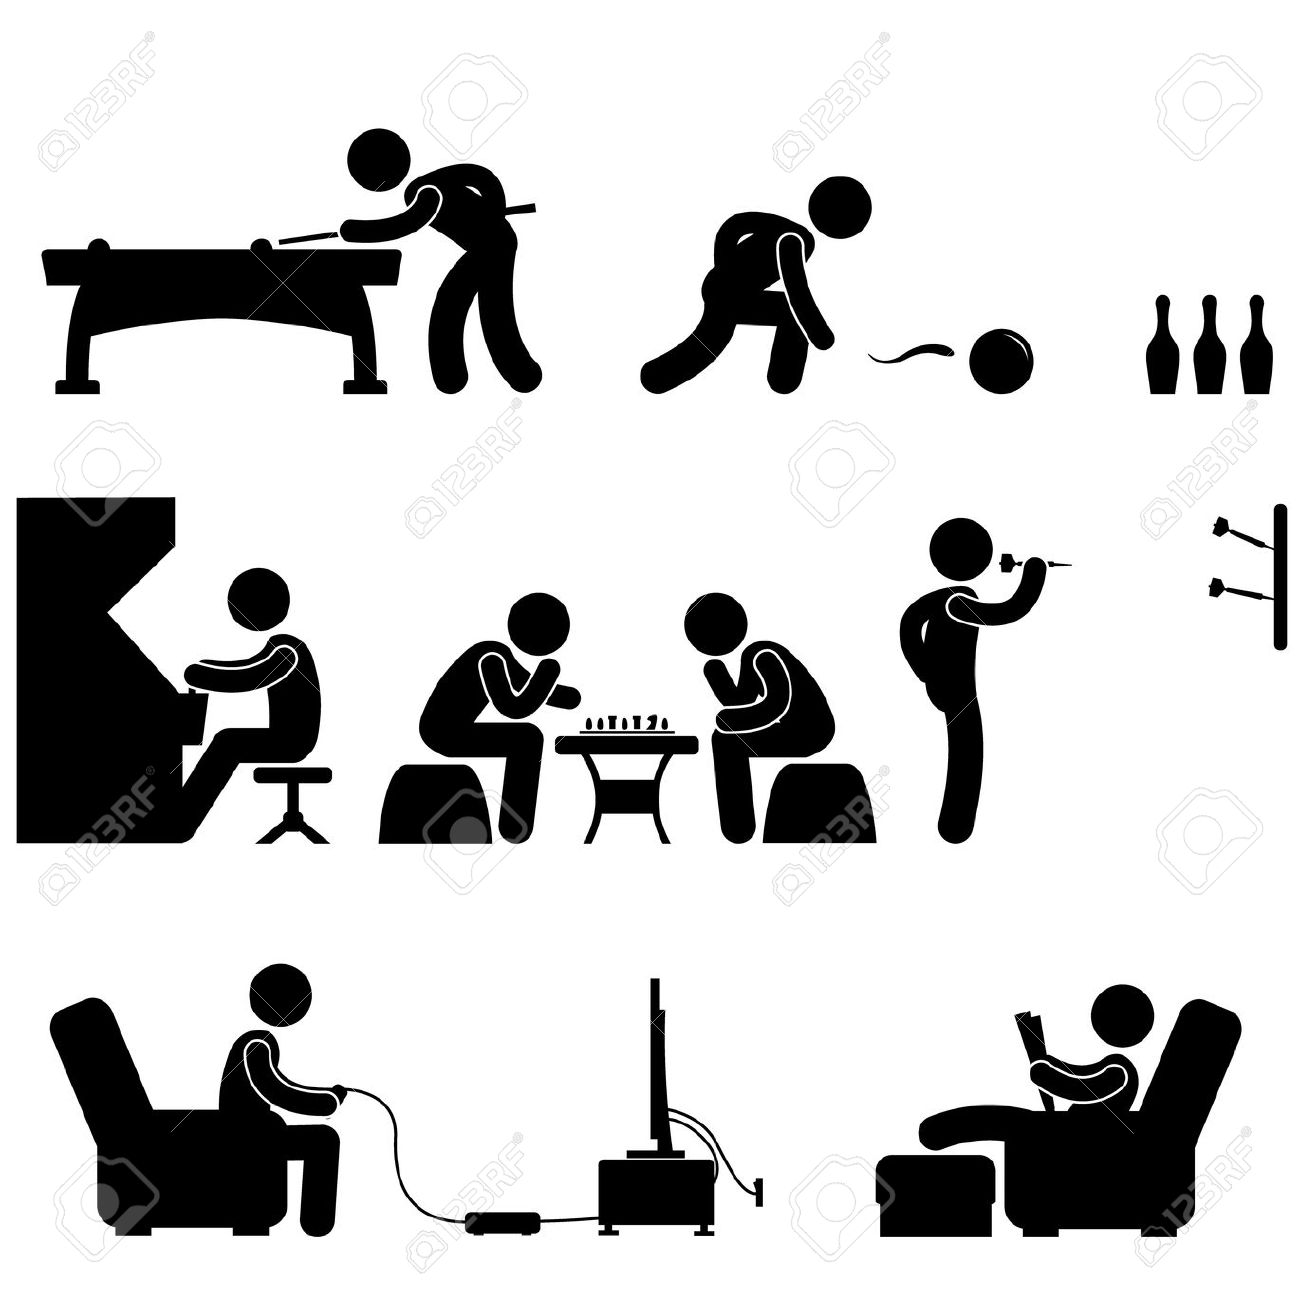 Gaming table black and white clipart.